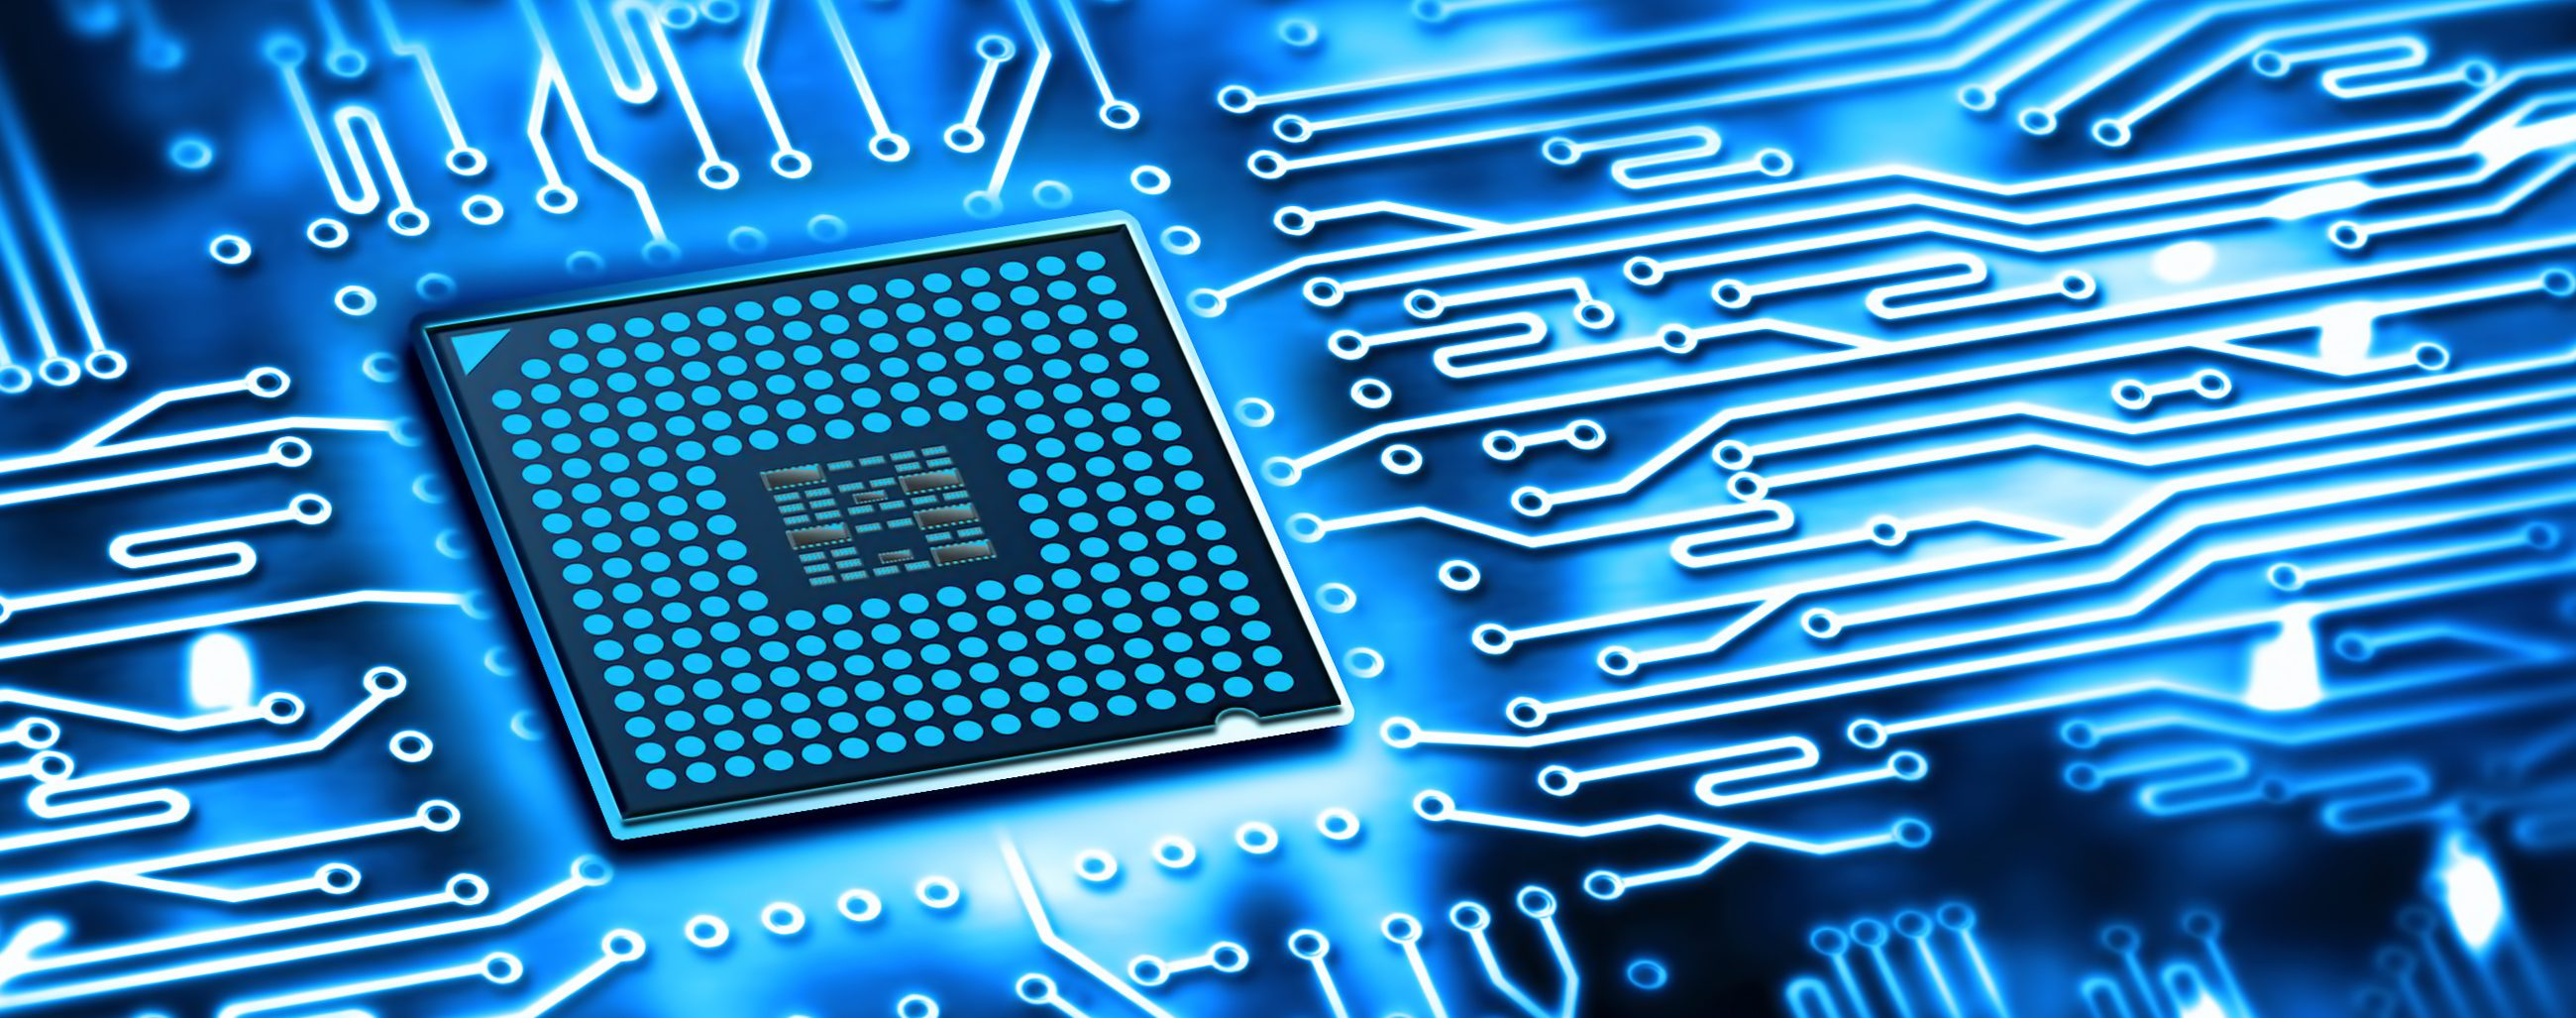 AI investment - Graphcore's Intelligence Processing Unit (IPU) is set to revolutionise AI. It is designed for Machine Intelligence and delivers between 10x and 100x greater speed compared to today's hardware - image courtesy of Pixabay